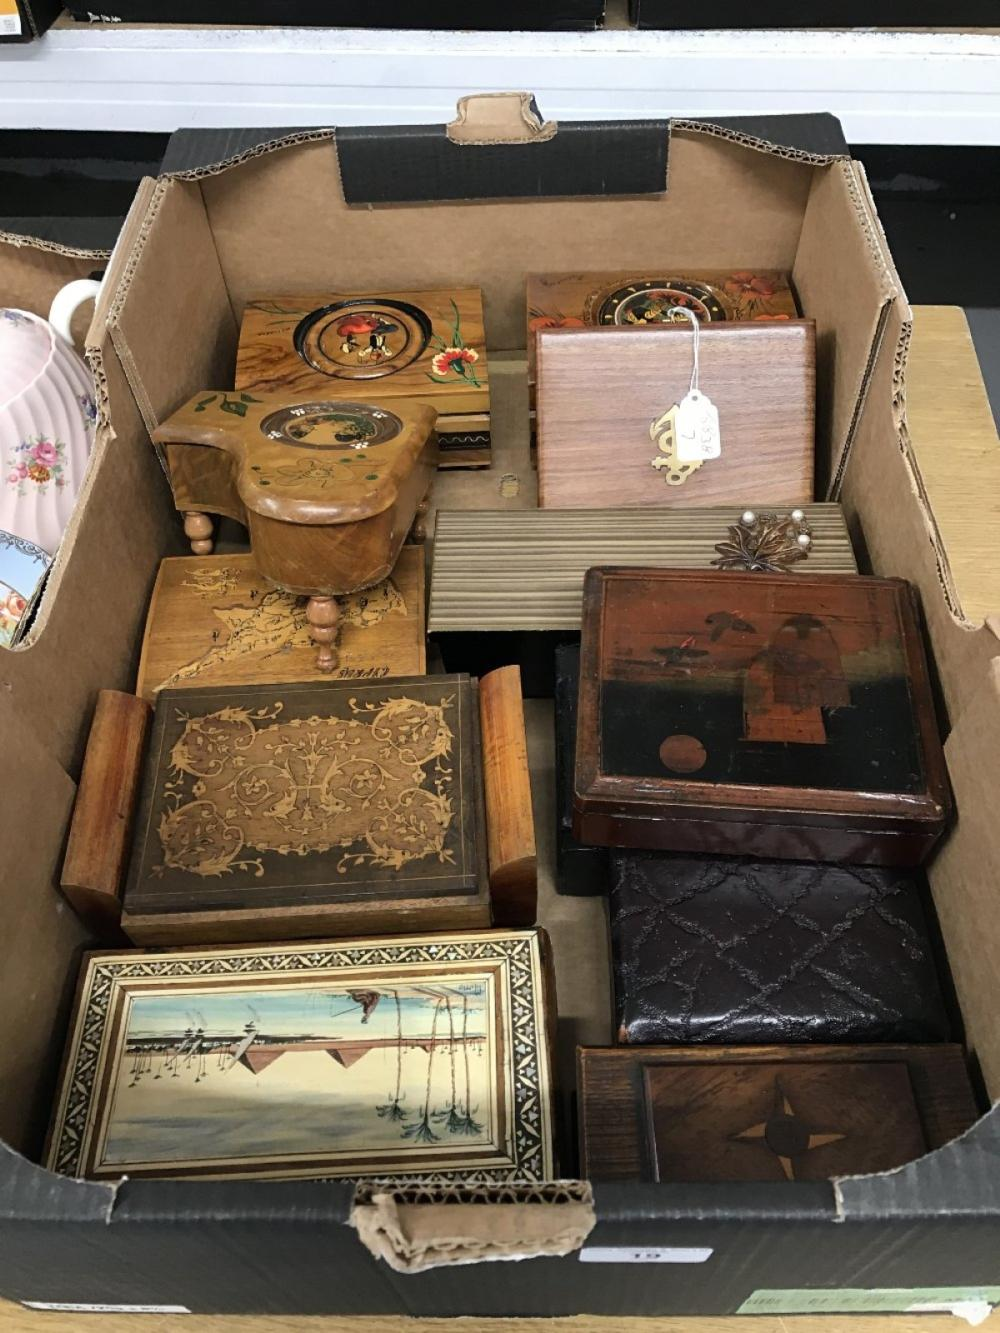 20th cent. Musical and other boxes, various woods & decoration. (13).